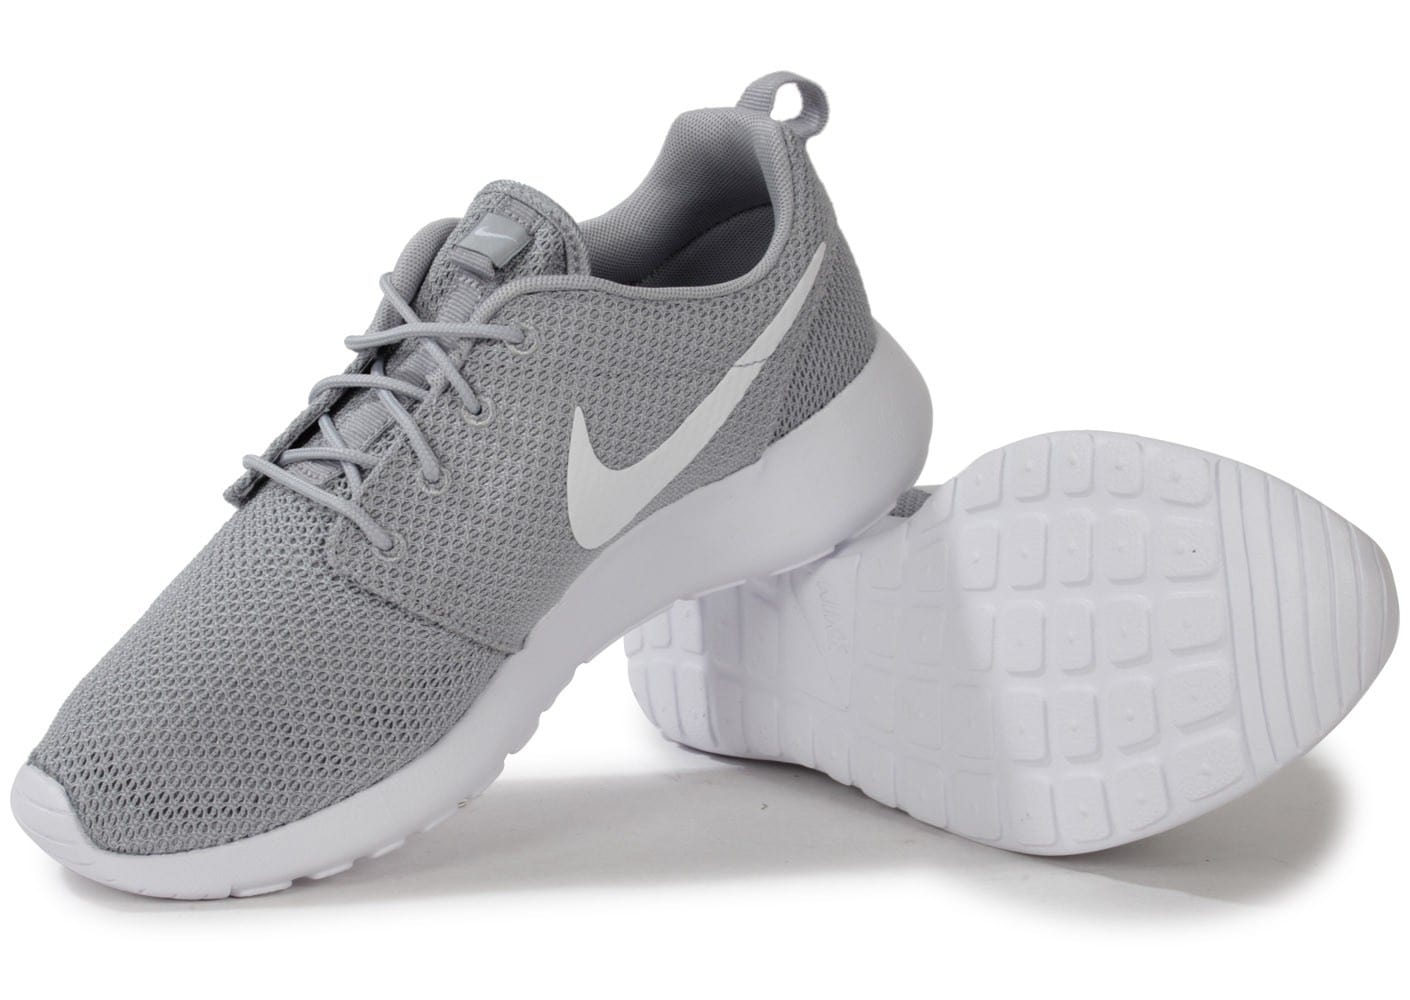 the latest 212be e9695 ... Chaussures Nike Roshe Run grise vue intérieure ...